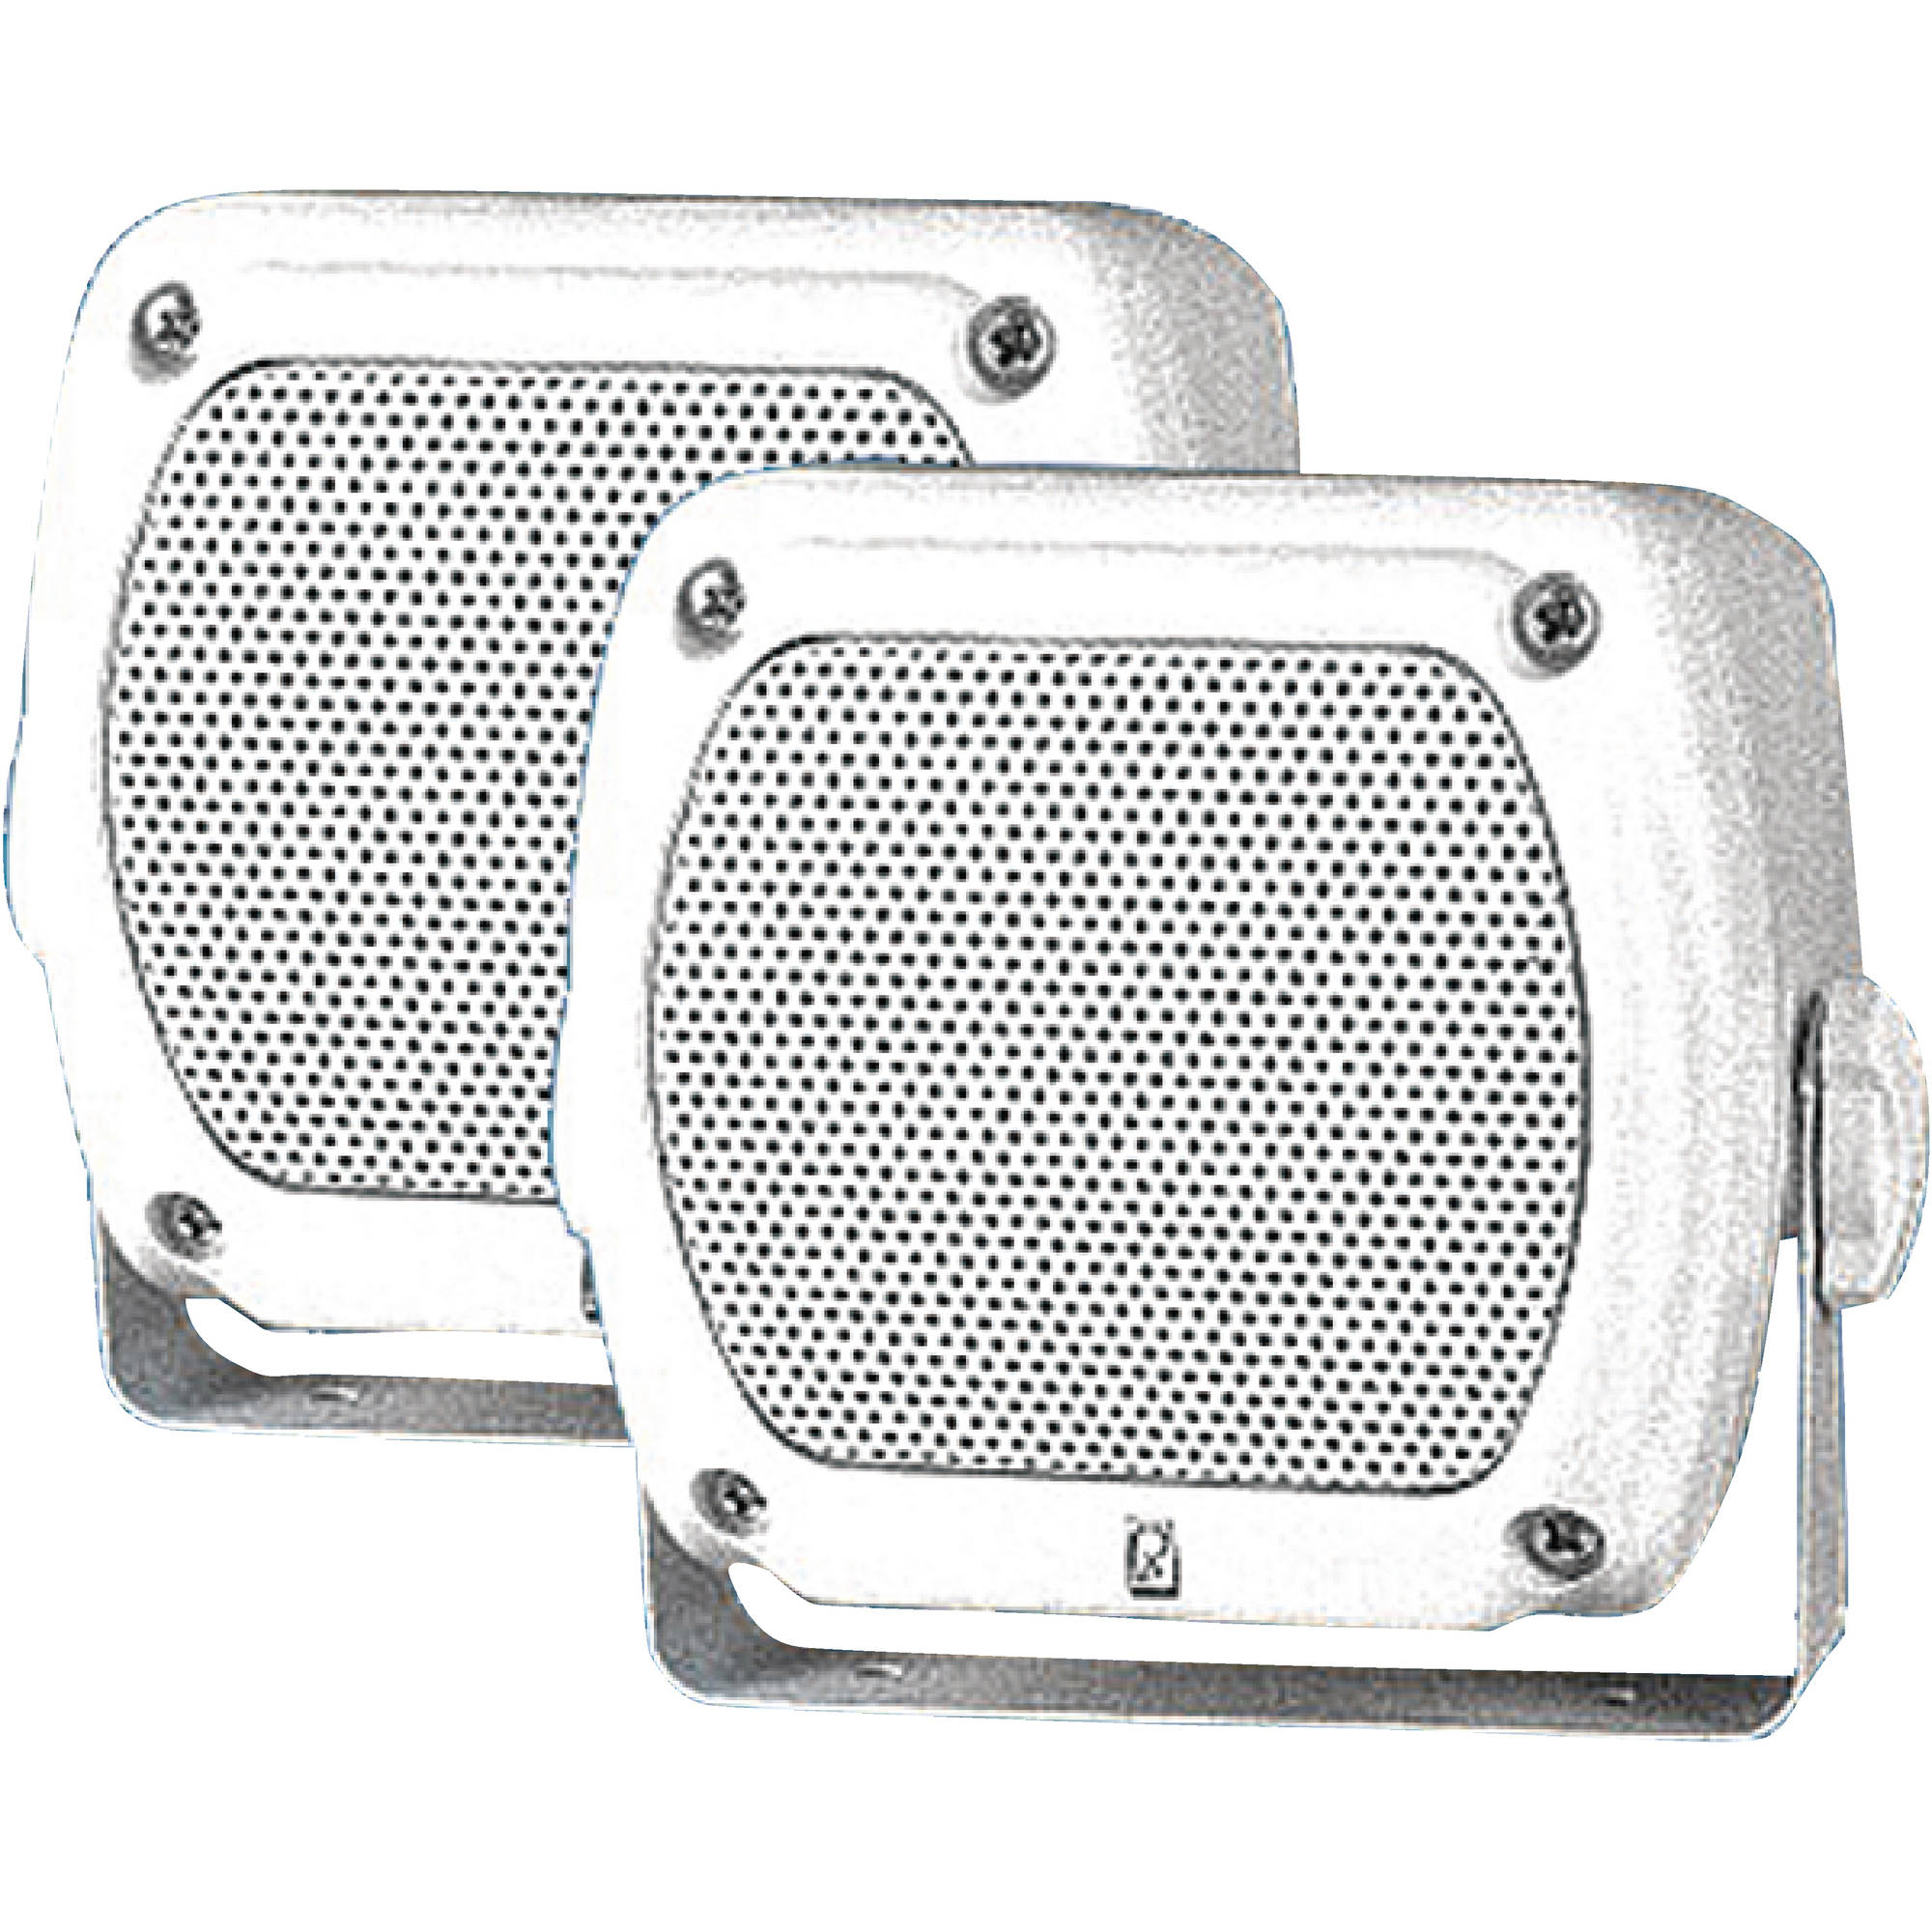 "Poly-Planar MA840W Waterproof Sub compact Box Speakers, 4-3/16"" x 4-1/16"", White (Sold as Pairs)"